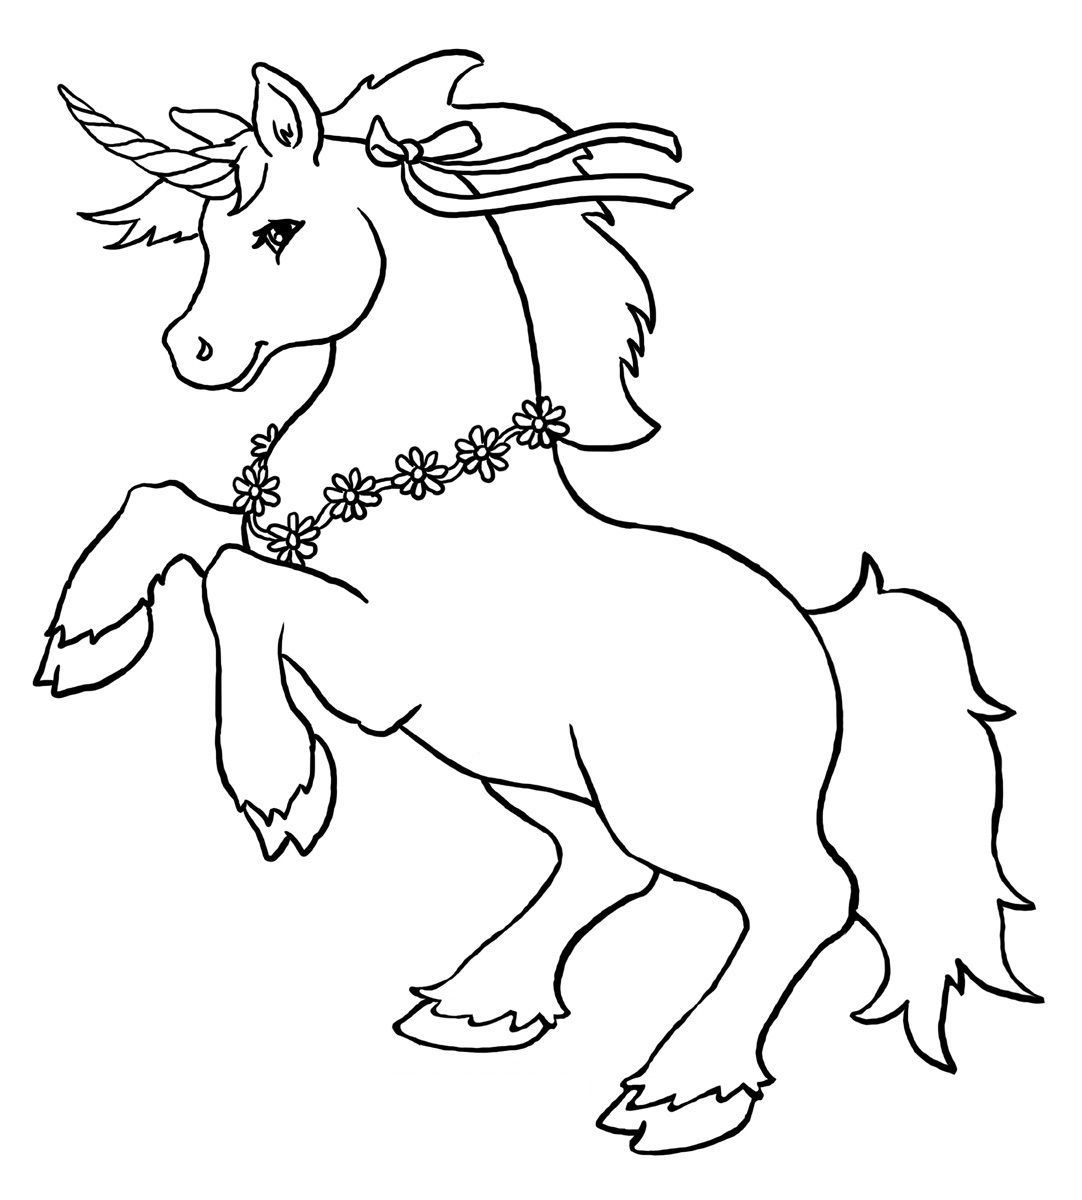 Free Printable Unicorn Coloring Pages For Kids Unicorn Coloring Pages Unicorn Pictures To Color Unicorn Pictures